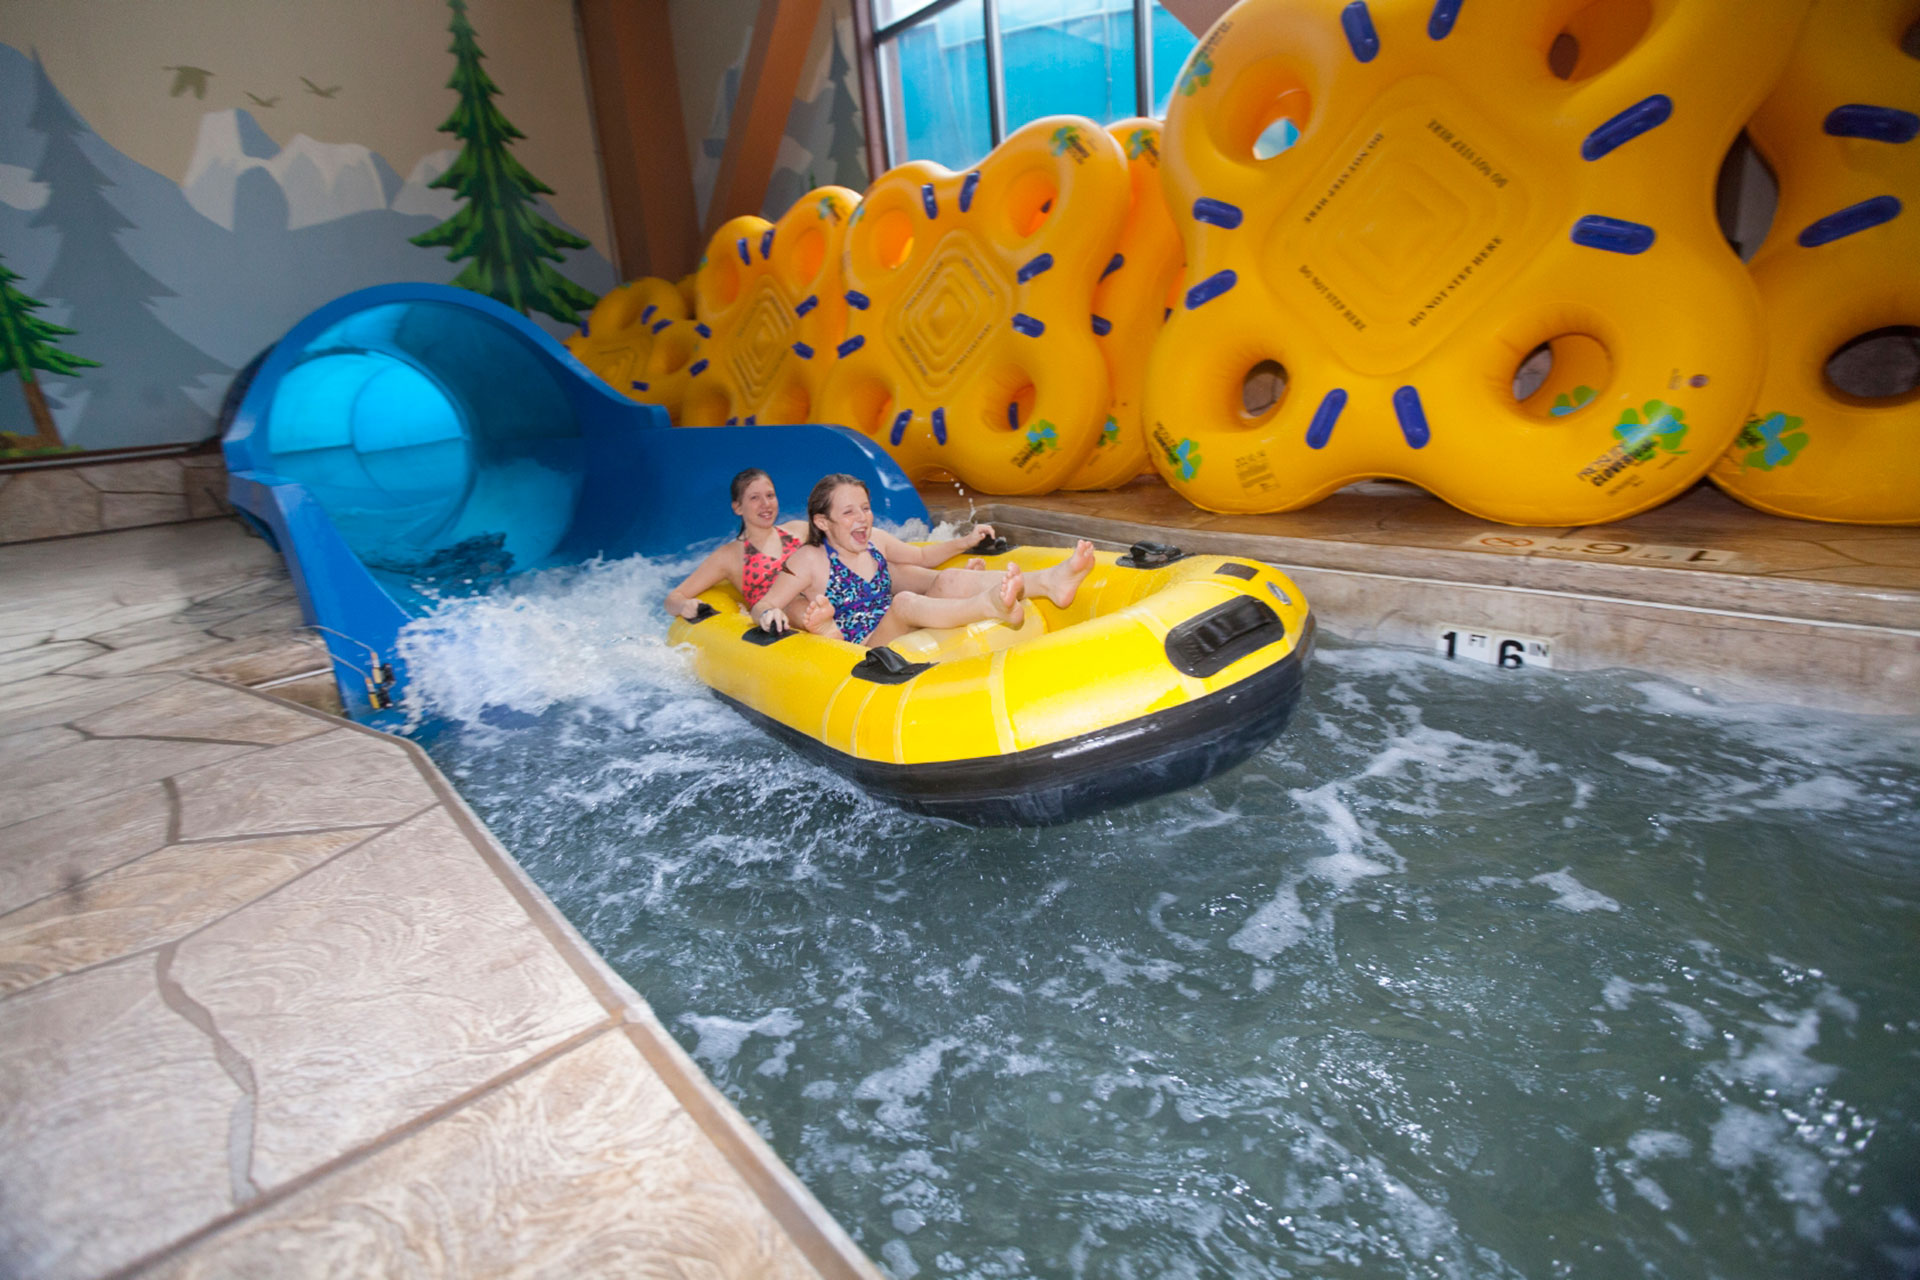 Girls on Tube Ride at Great Wolf Lodge in the Poconos